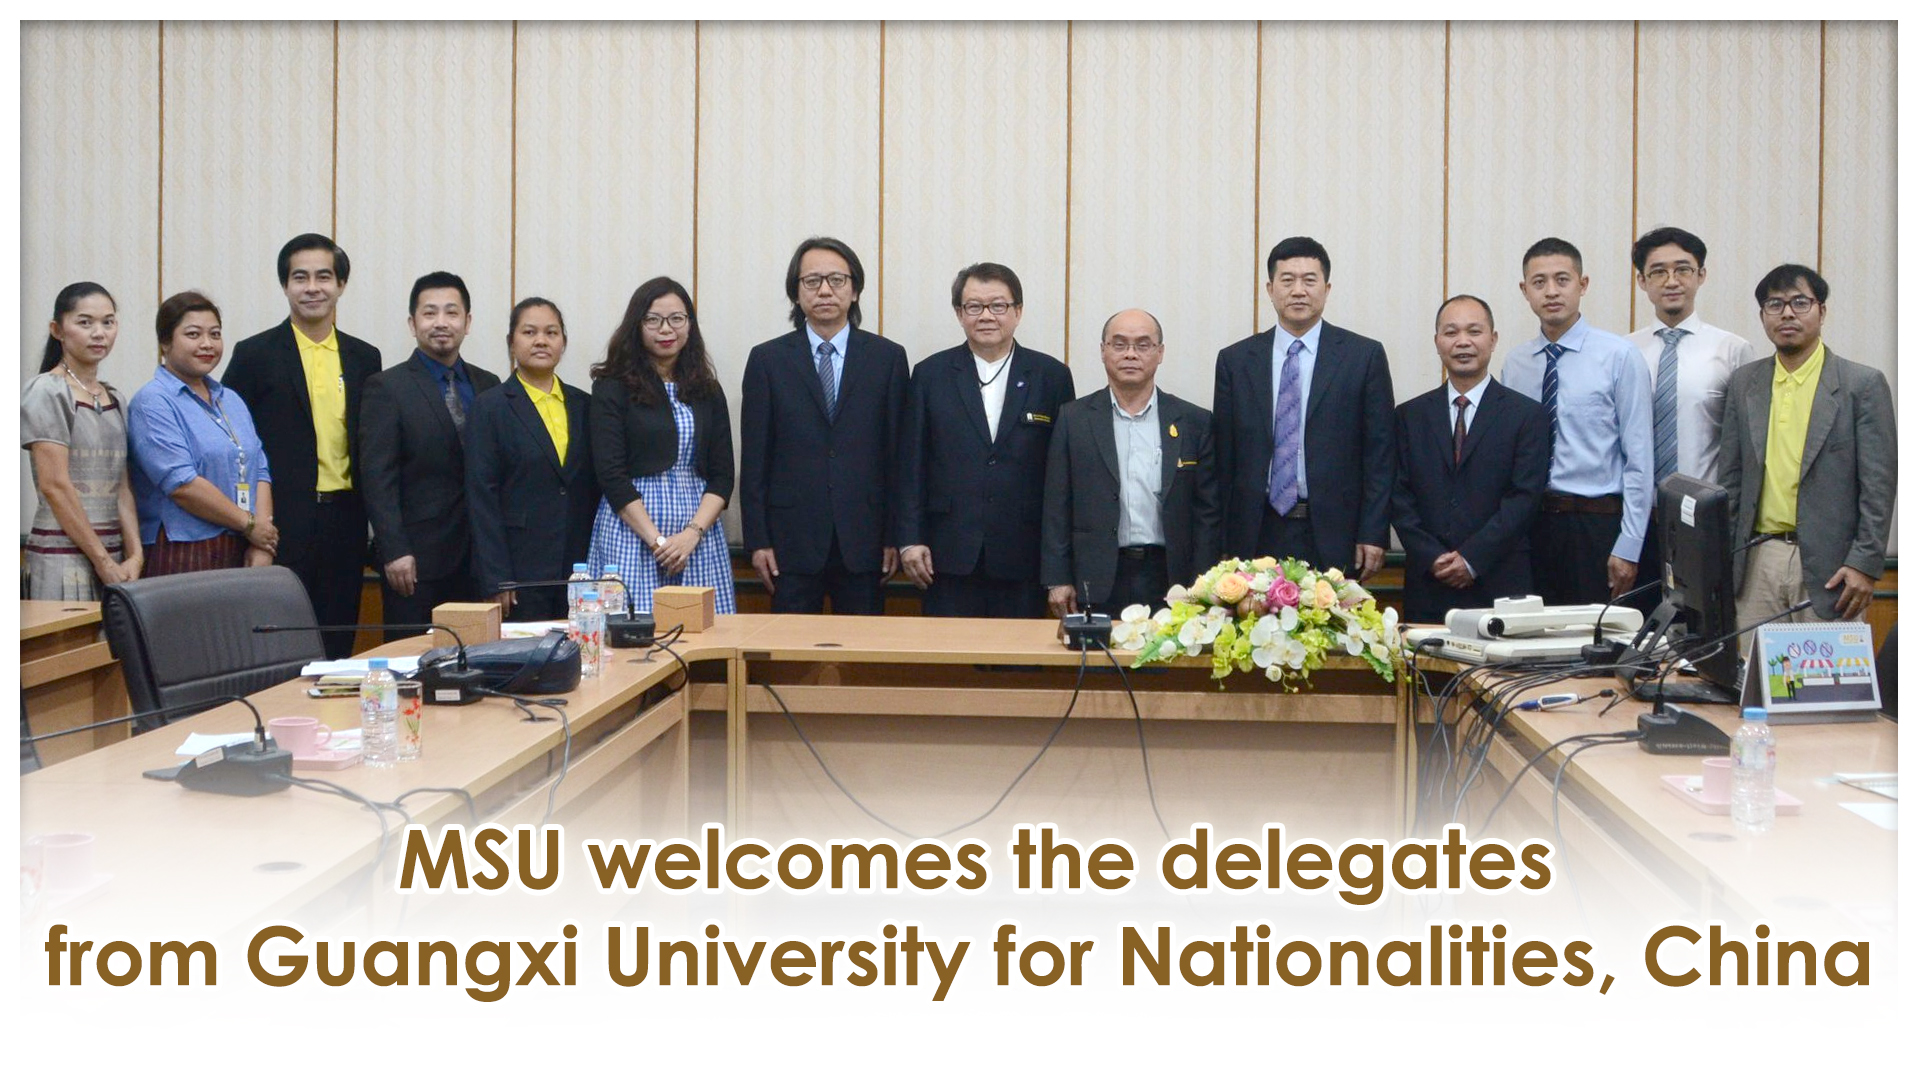 MSU welcomes the delegates from Guangxi University for Nationalities, China